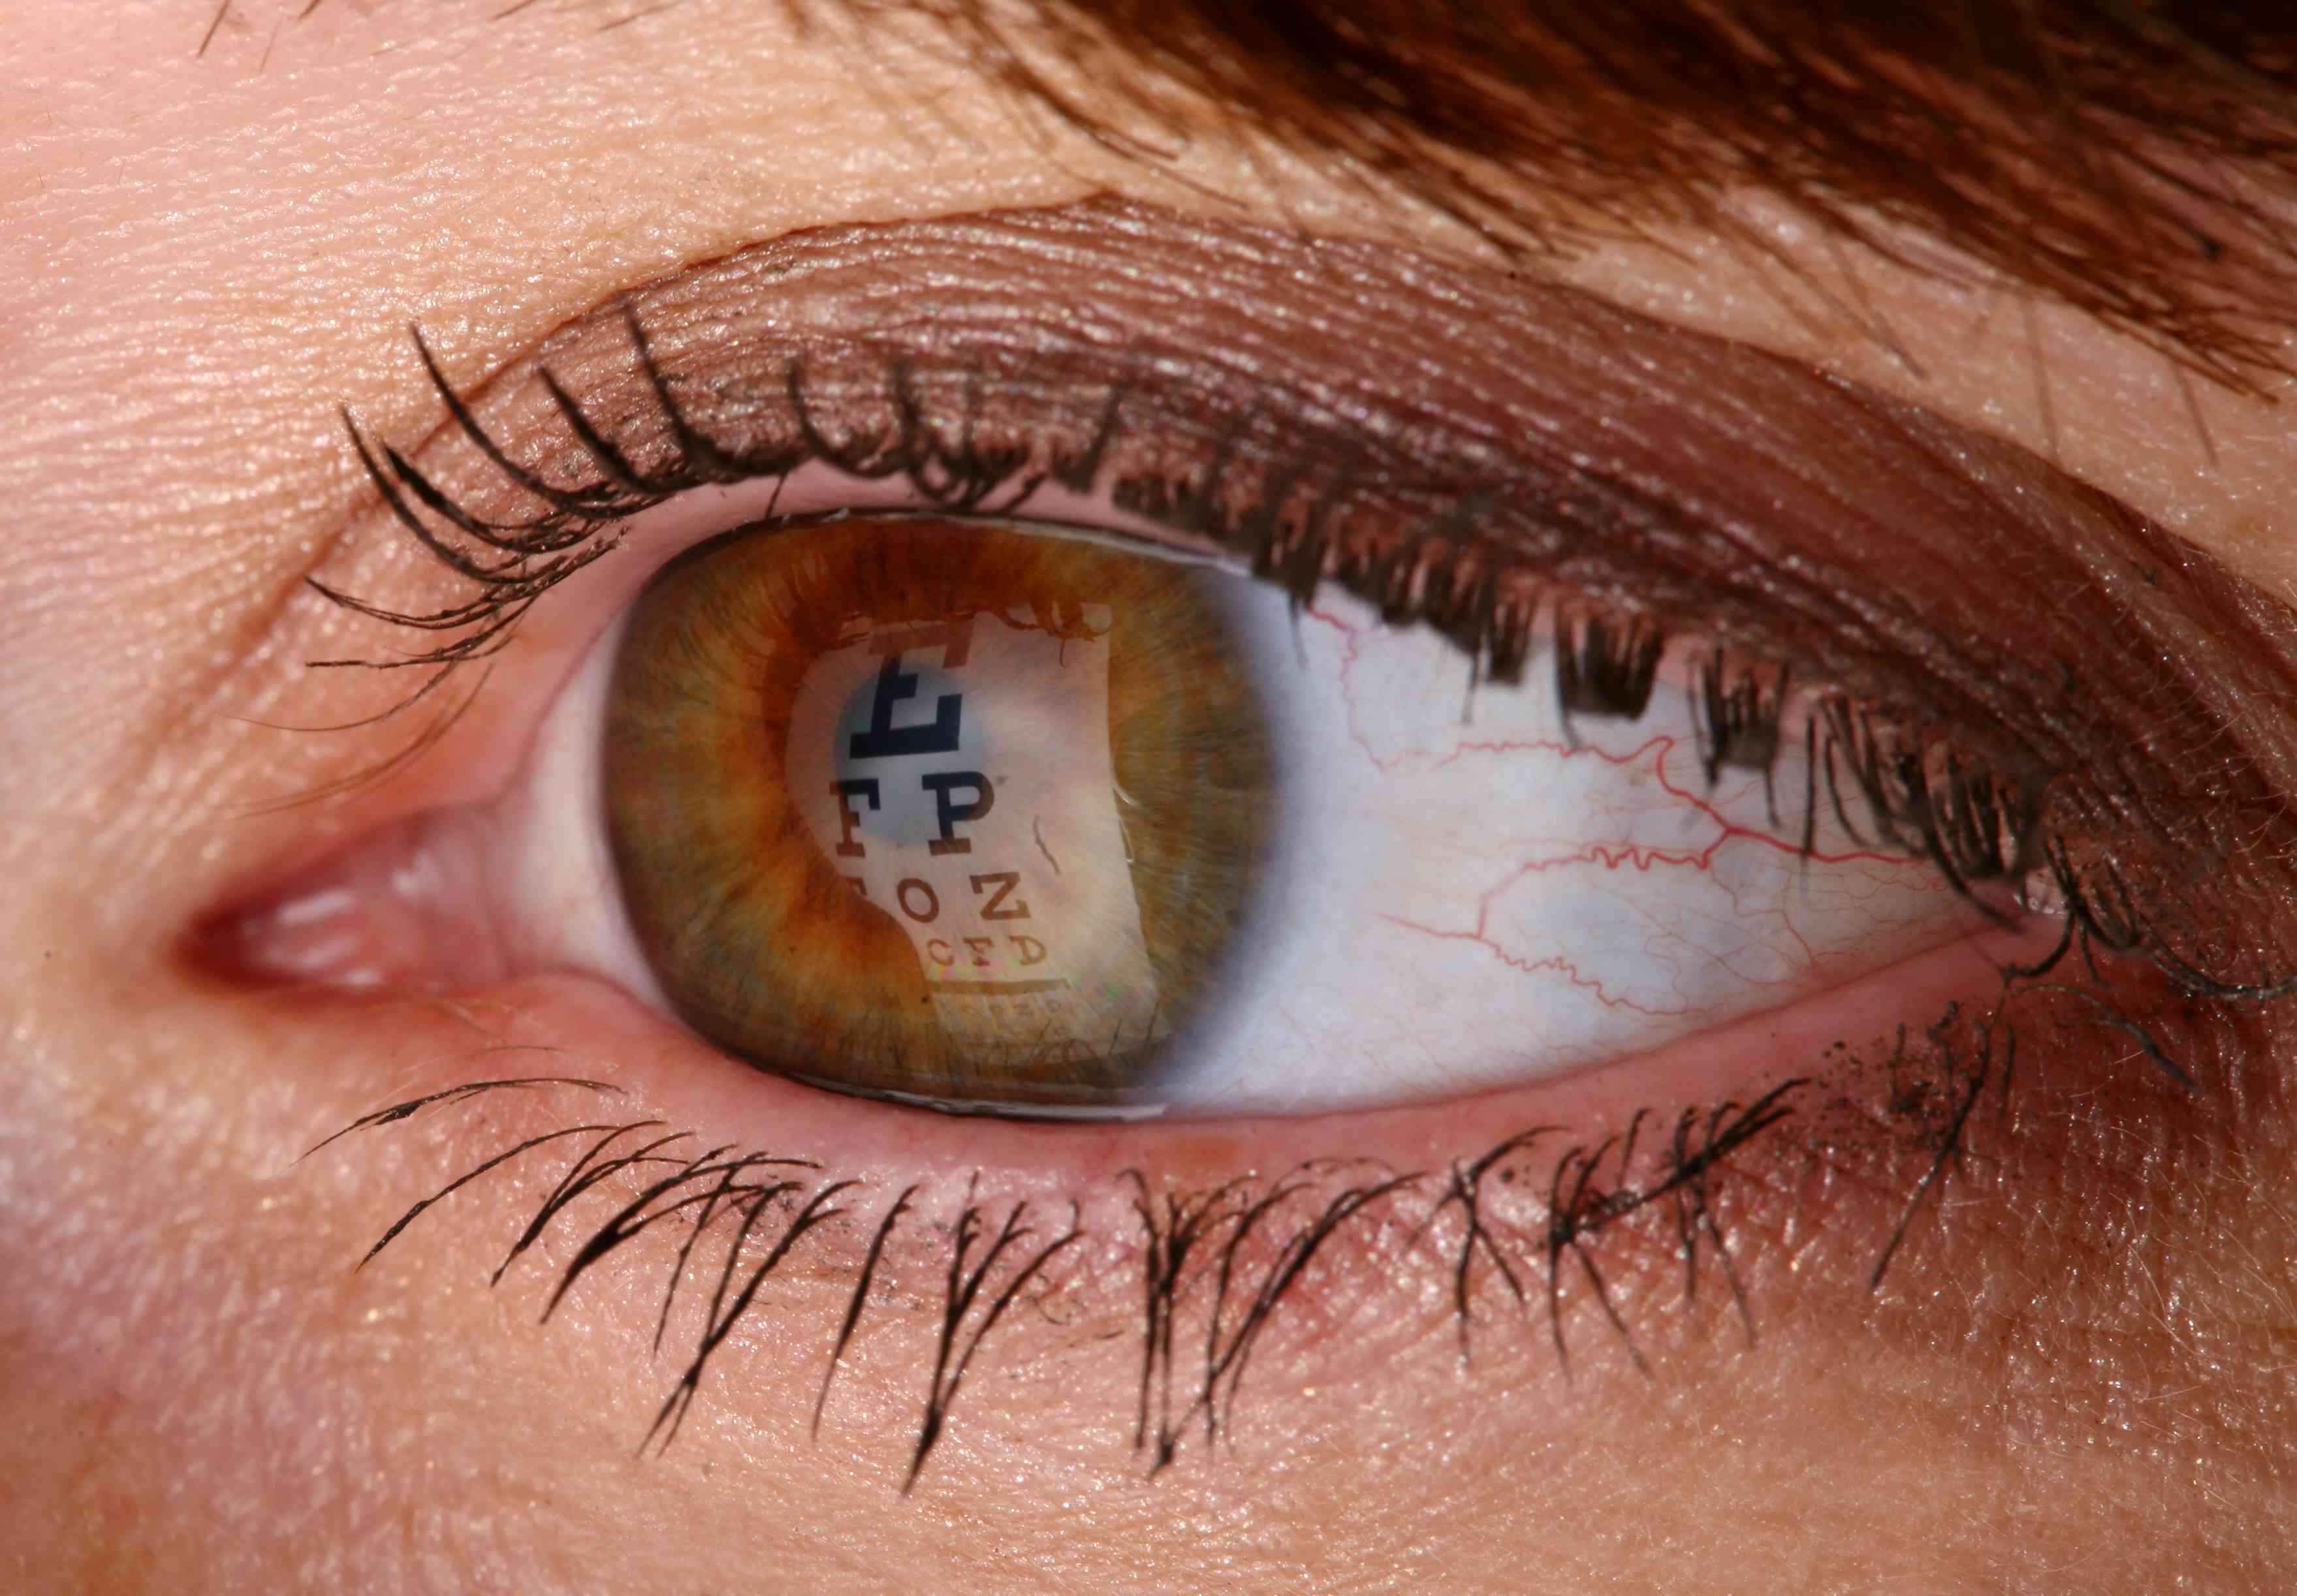 Close up of an eye with an eye chart reflecting in it